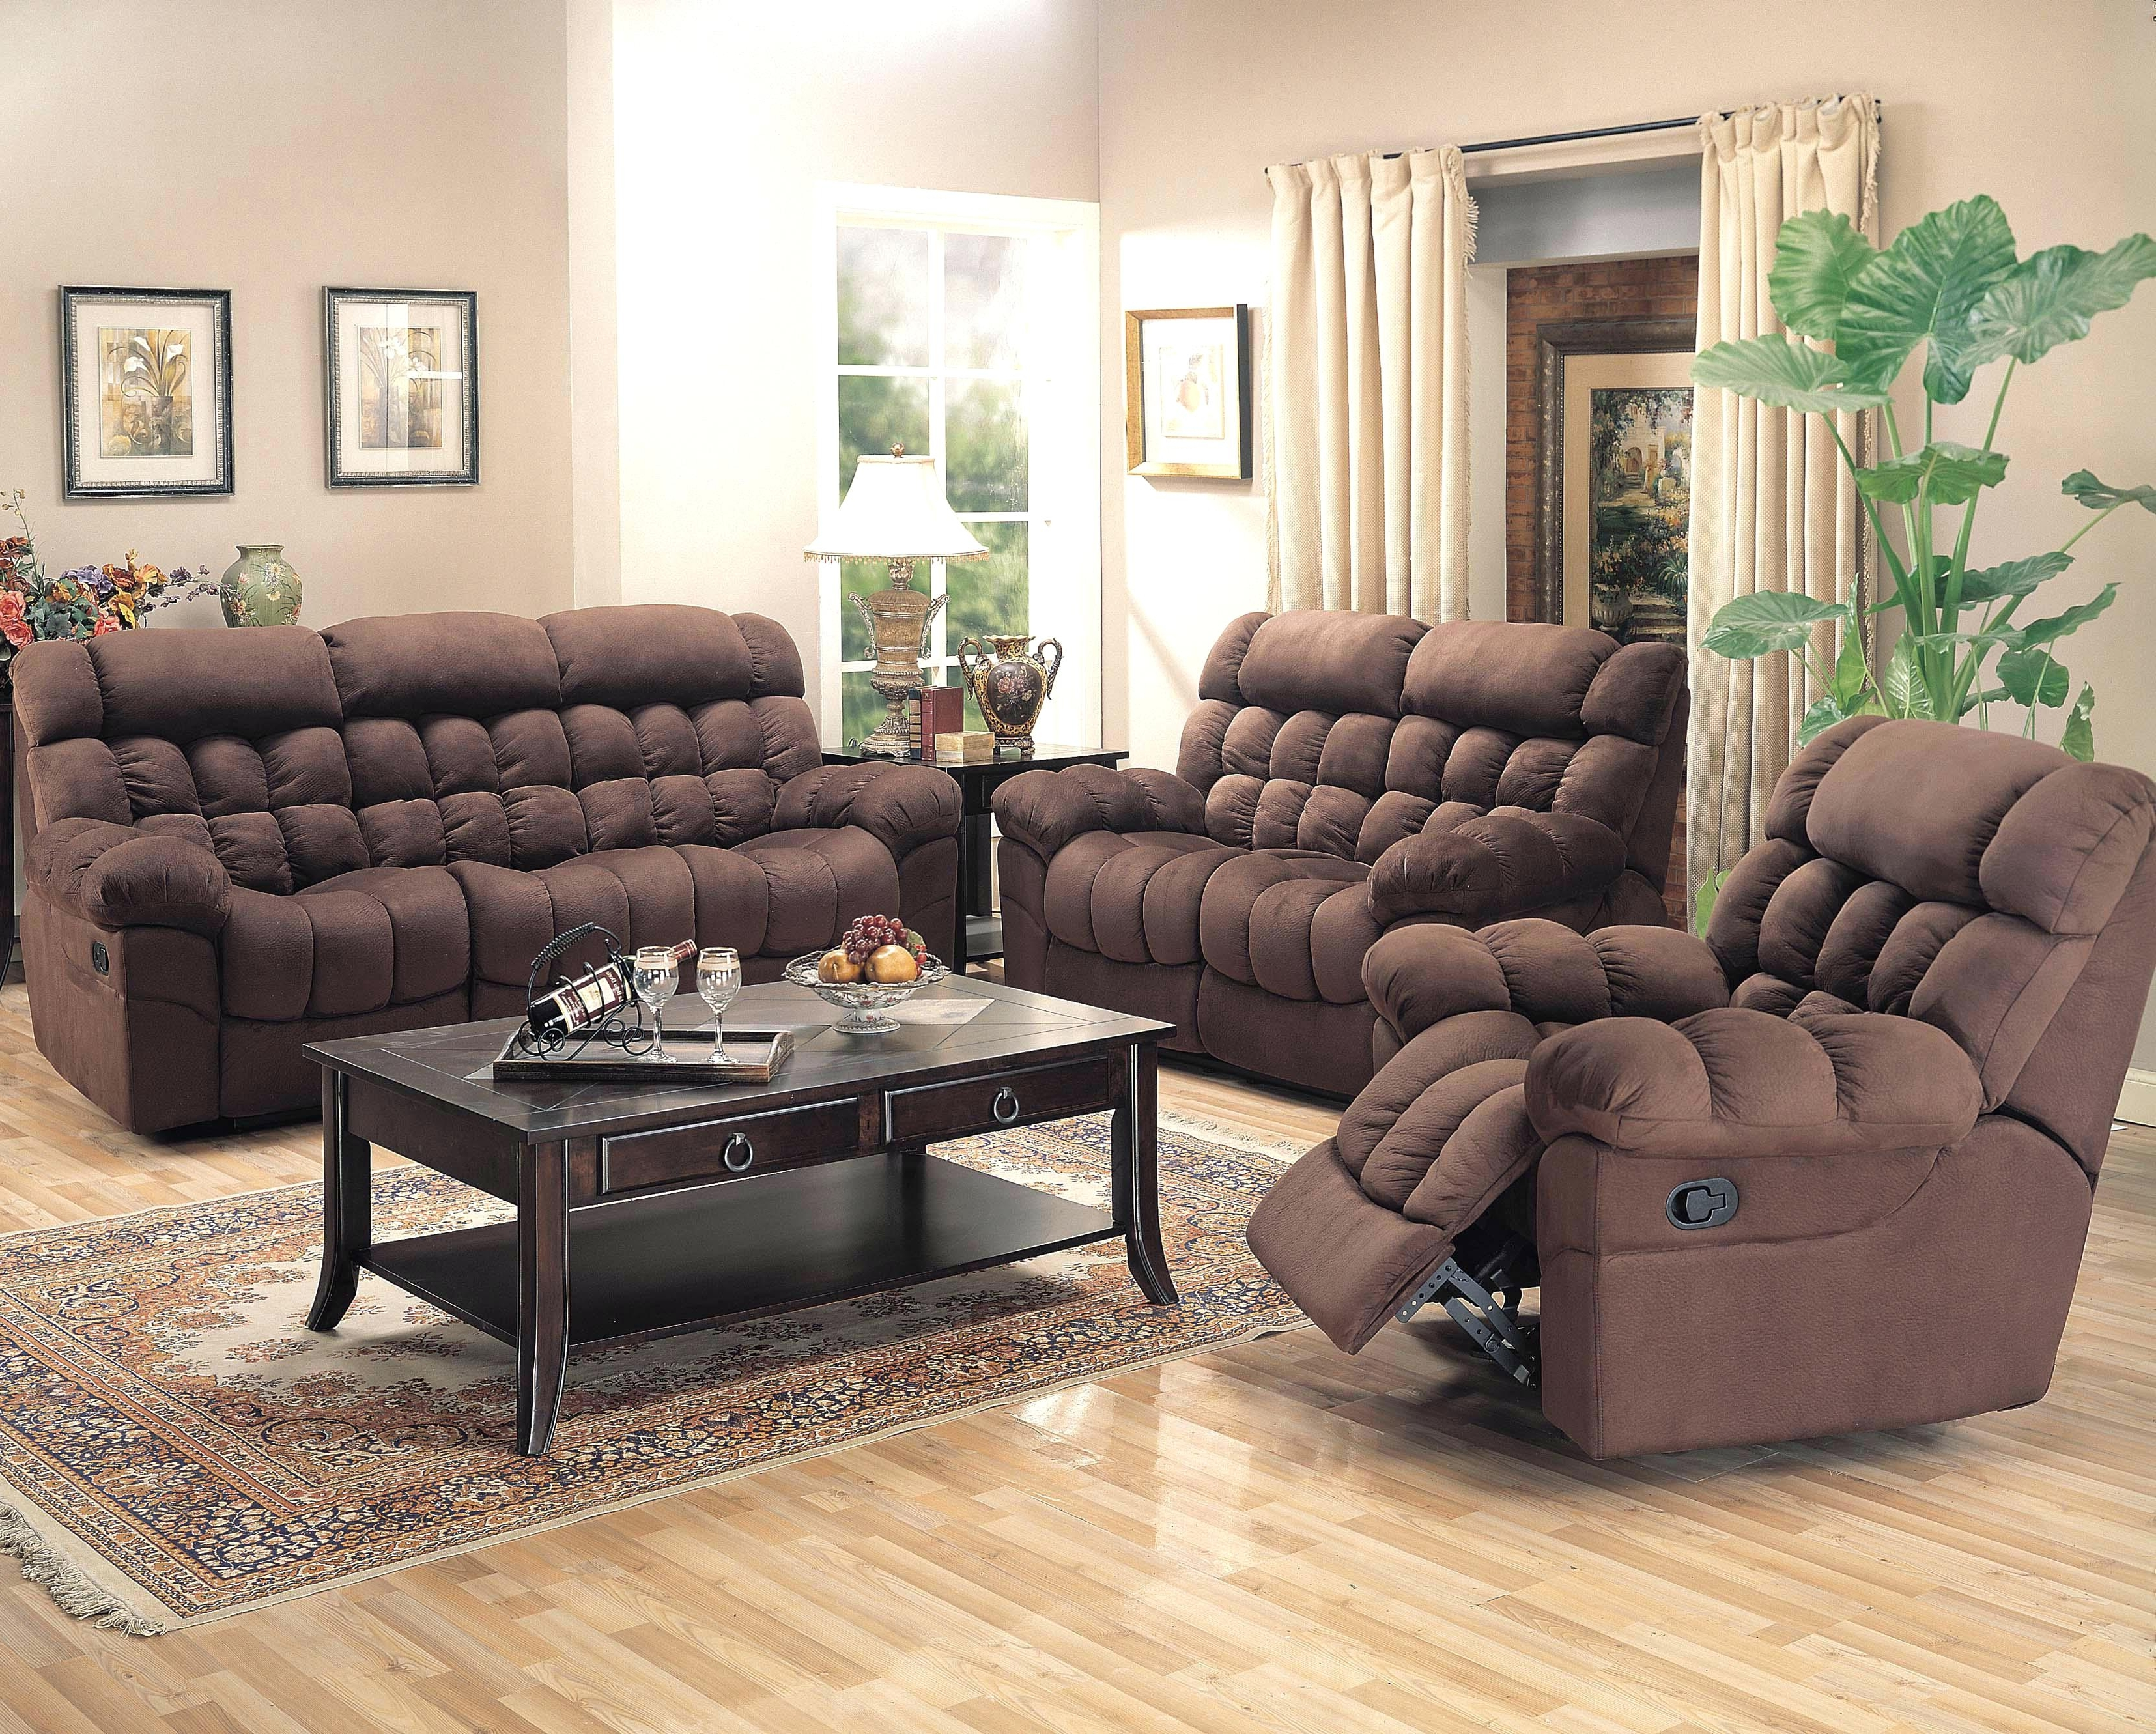 Preferred Overstuffed Sofas And Chairs Within Overstuffed Sofa Sofas And Chairs Cushions Pillows (View 4 of 20)